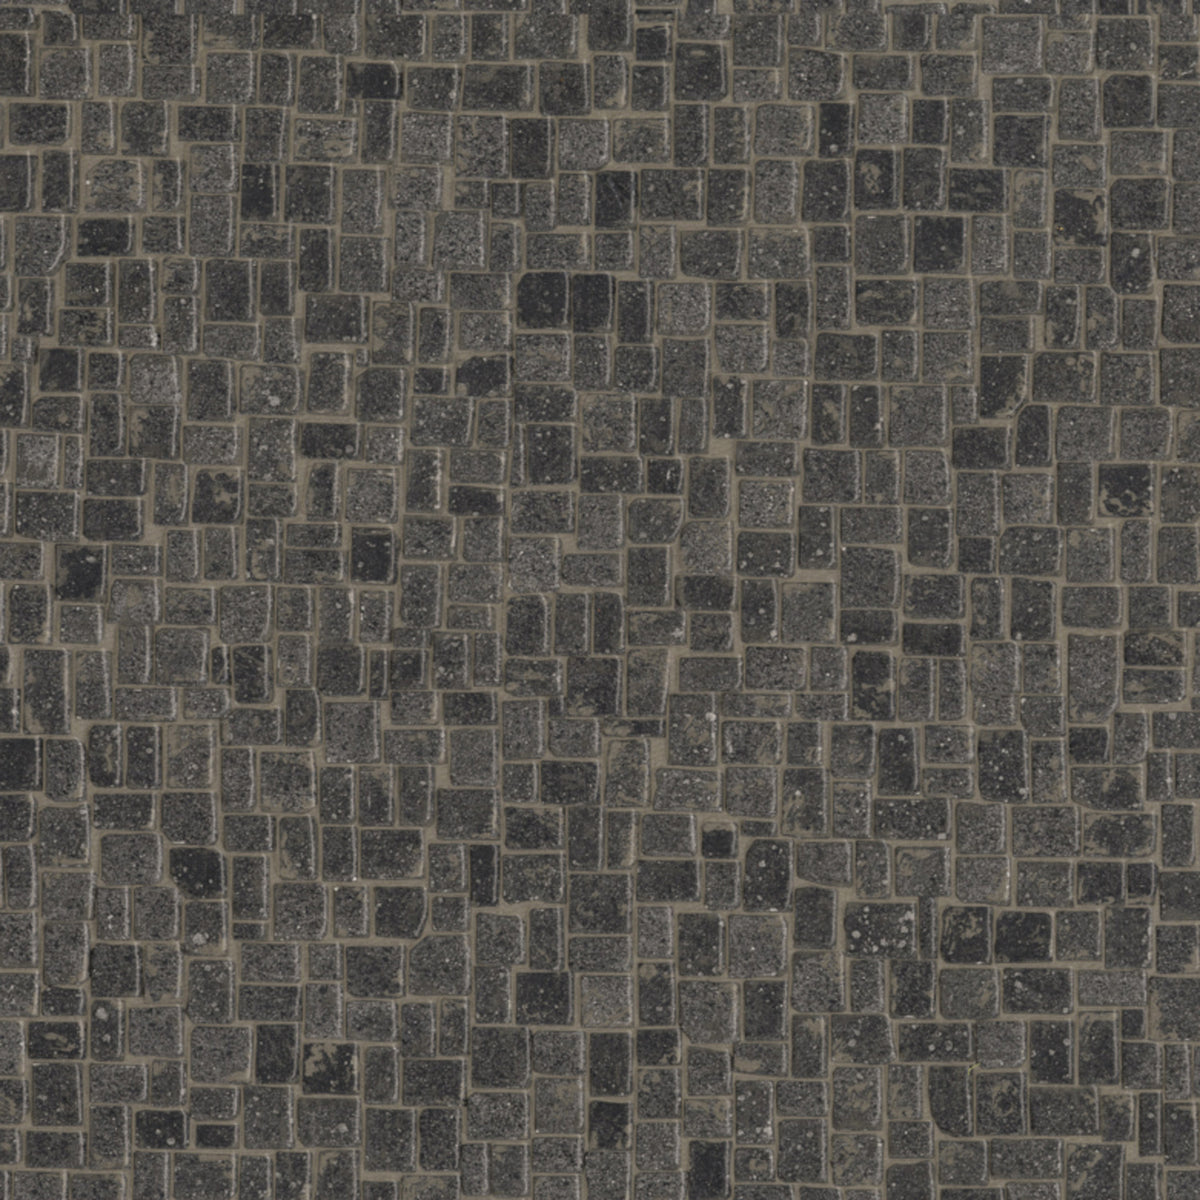 Karndean Michelangelo 12 in. x 12 in. Tile - Umbrian Nero